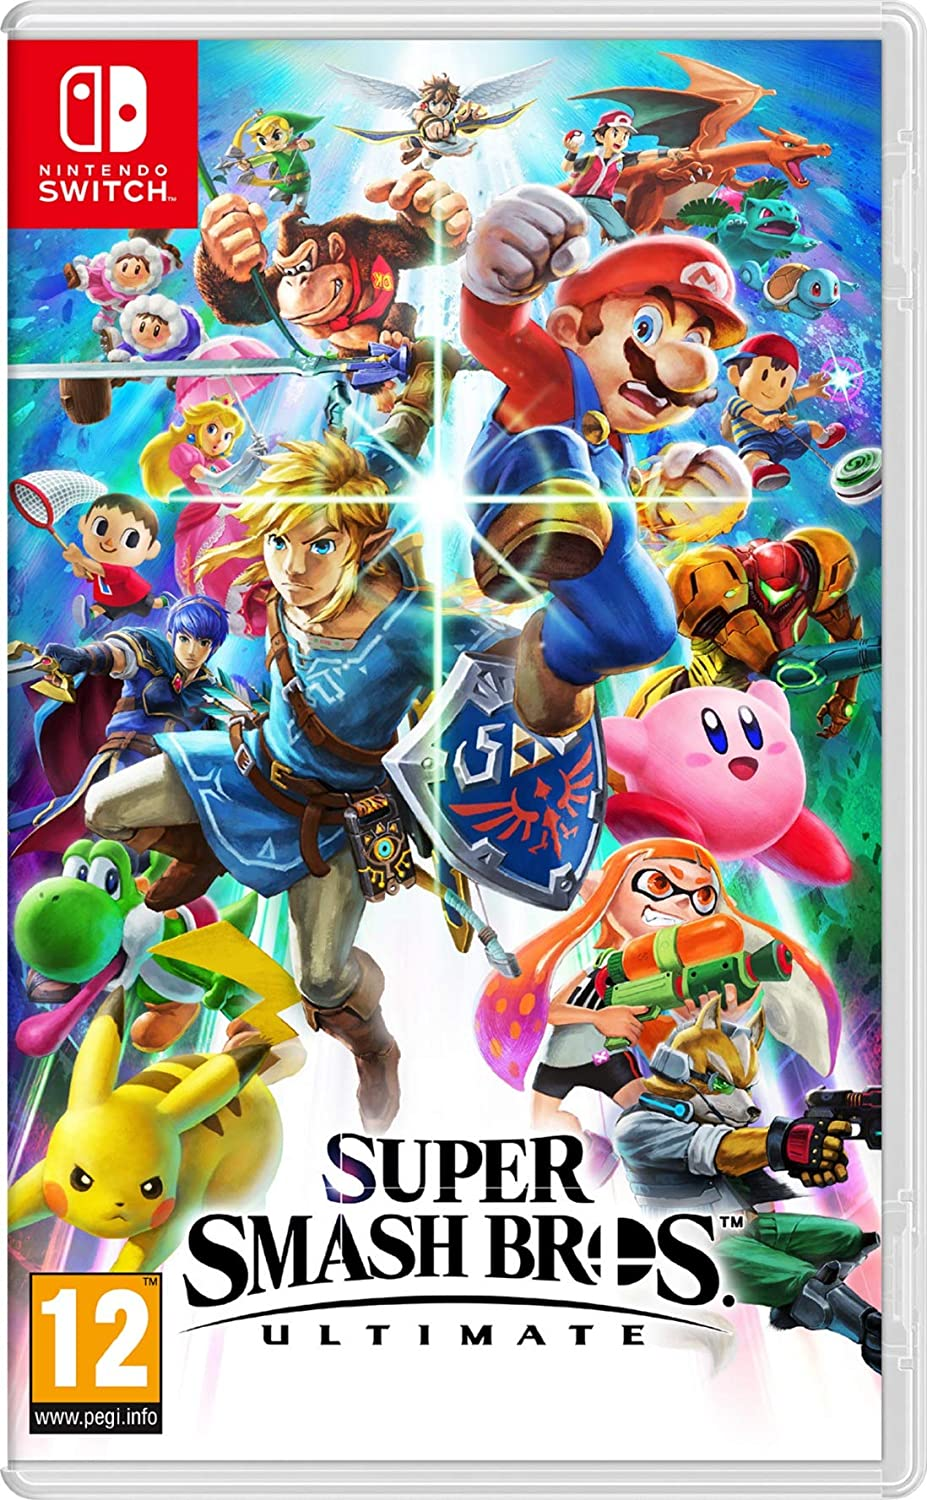 Super Smash Bros - Ultimate - Nintendo Switch [Importación inglesa]: Amazon.es: Videojuegos